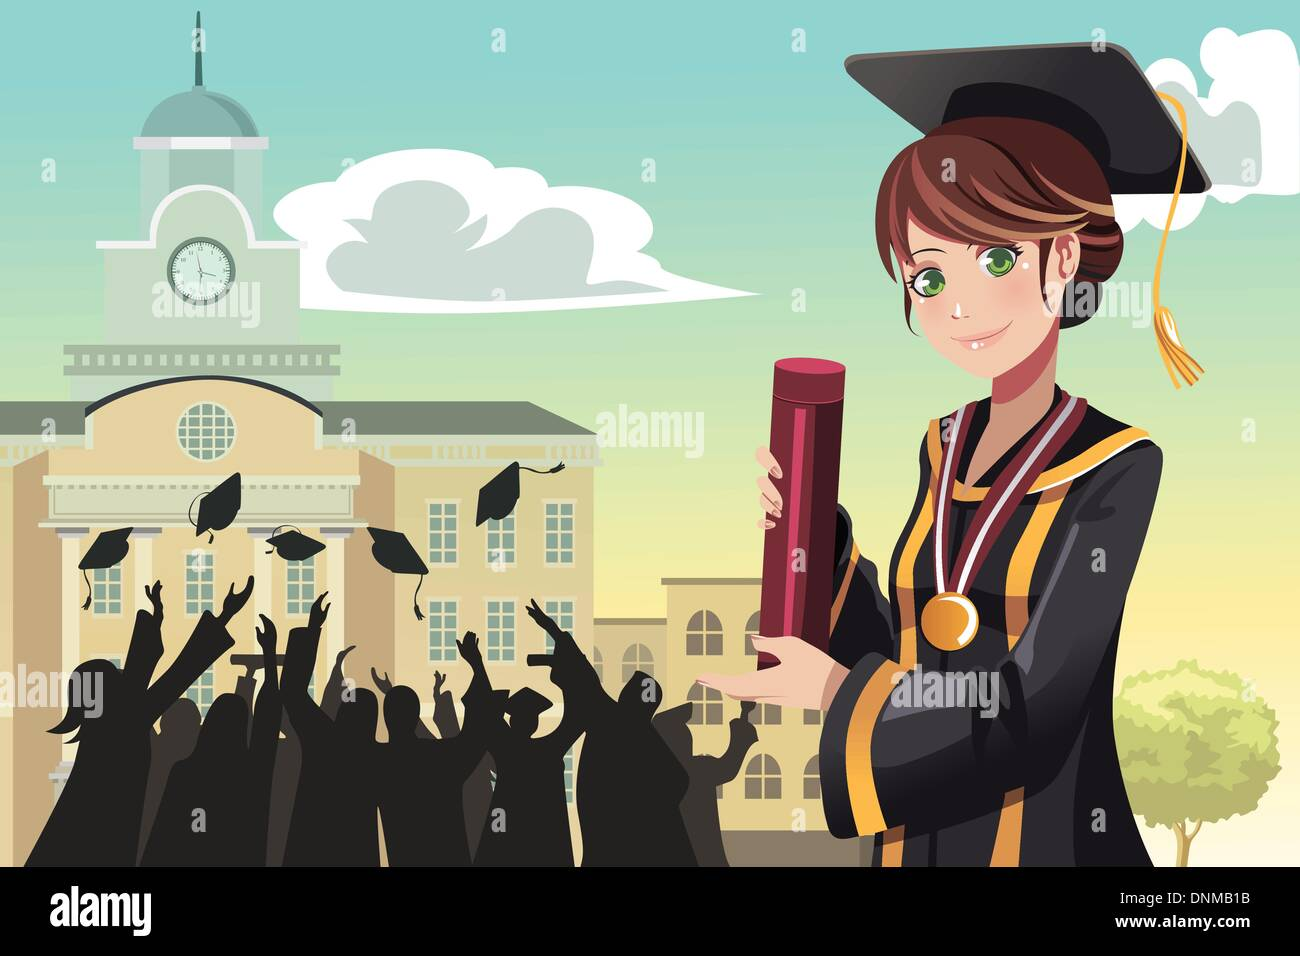 A vector illustration of a graduation girl holding her diploma with her friends in the background - Stock Image